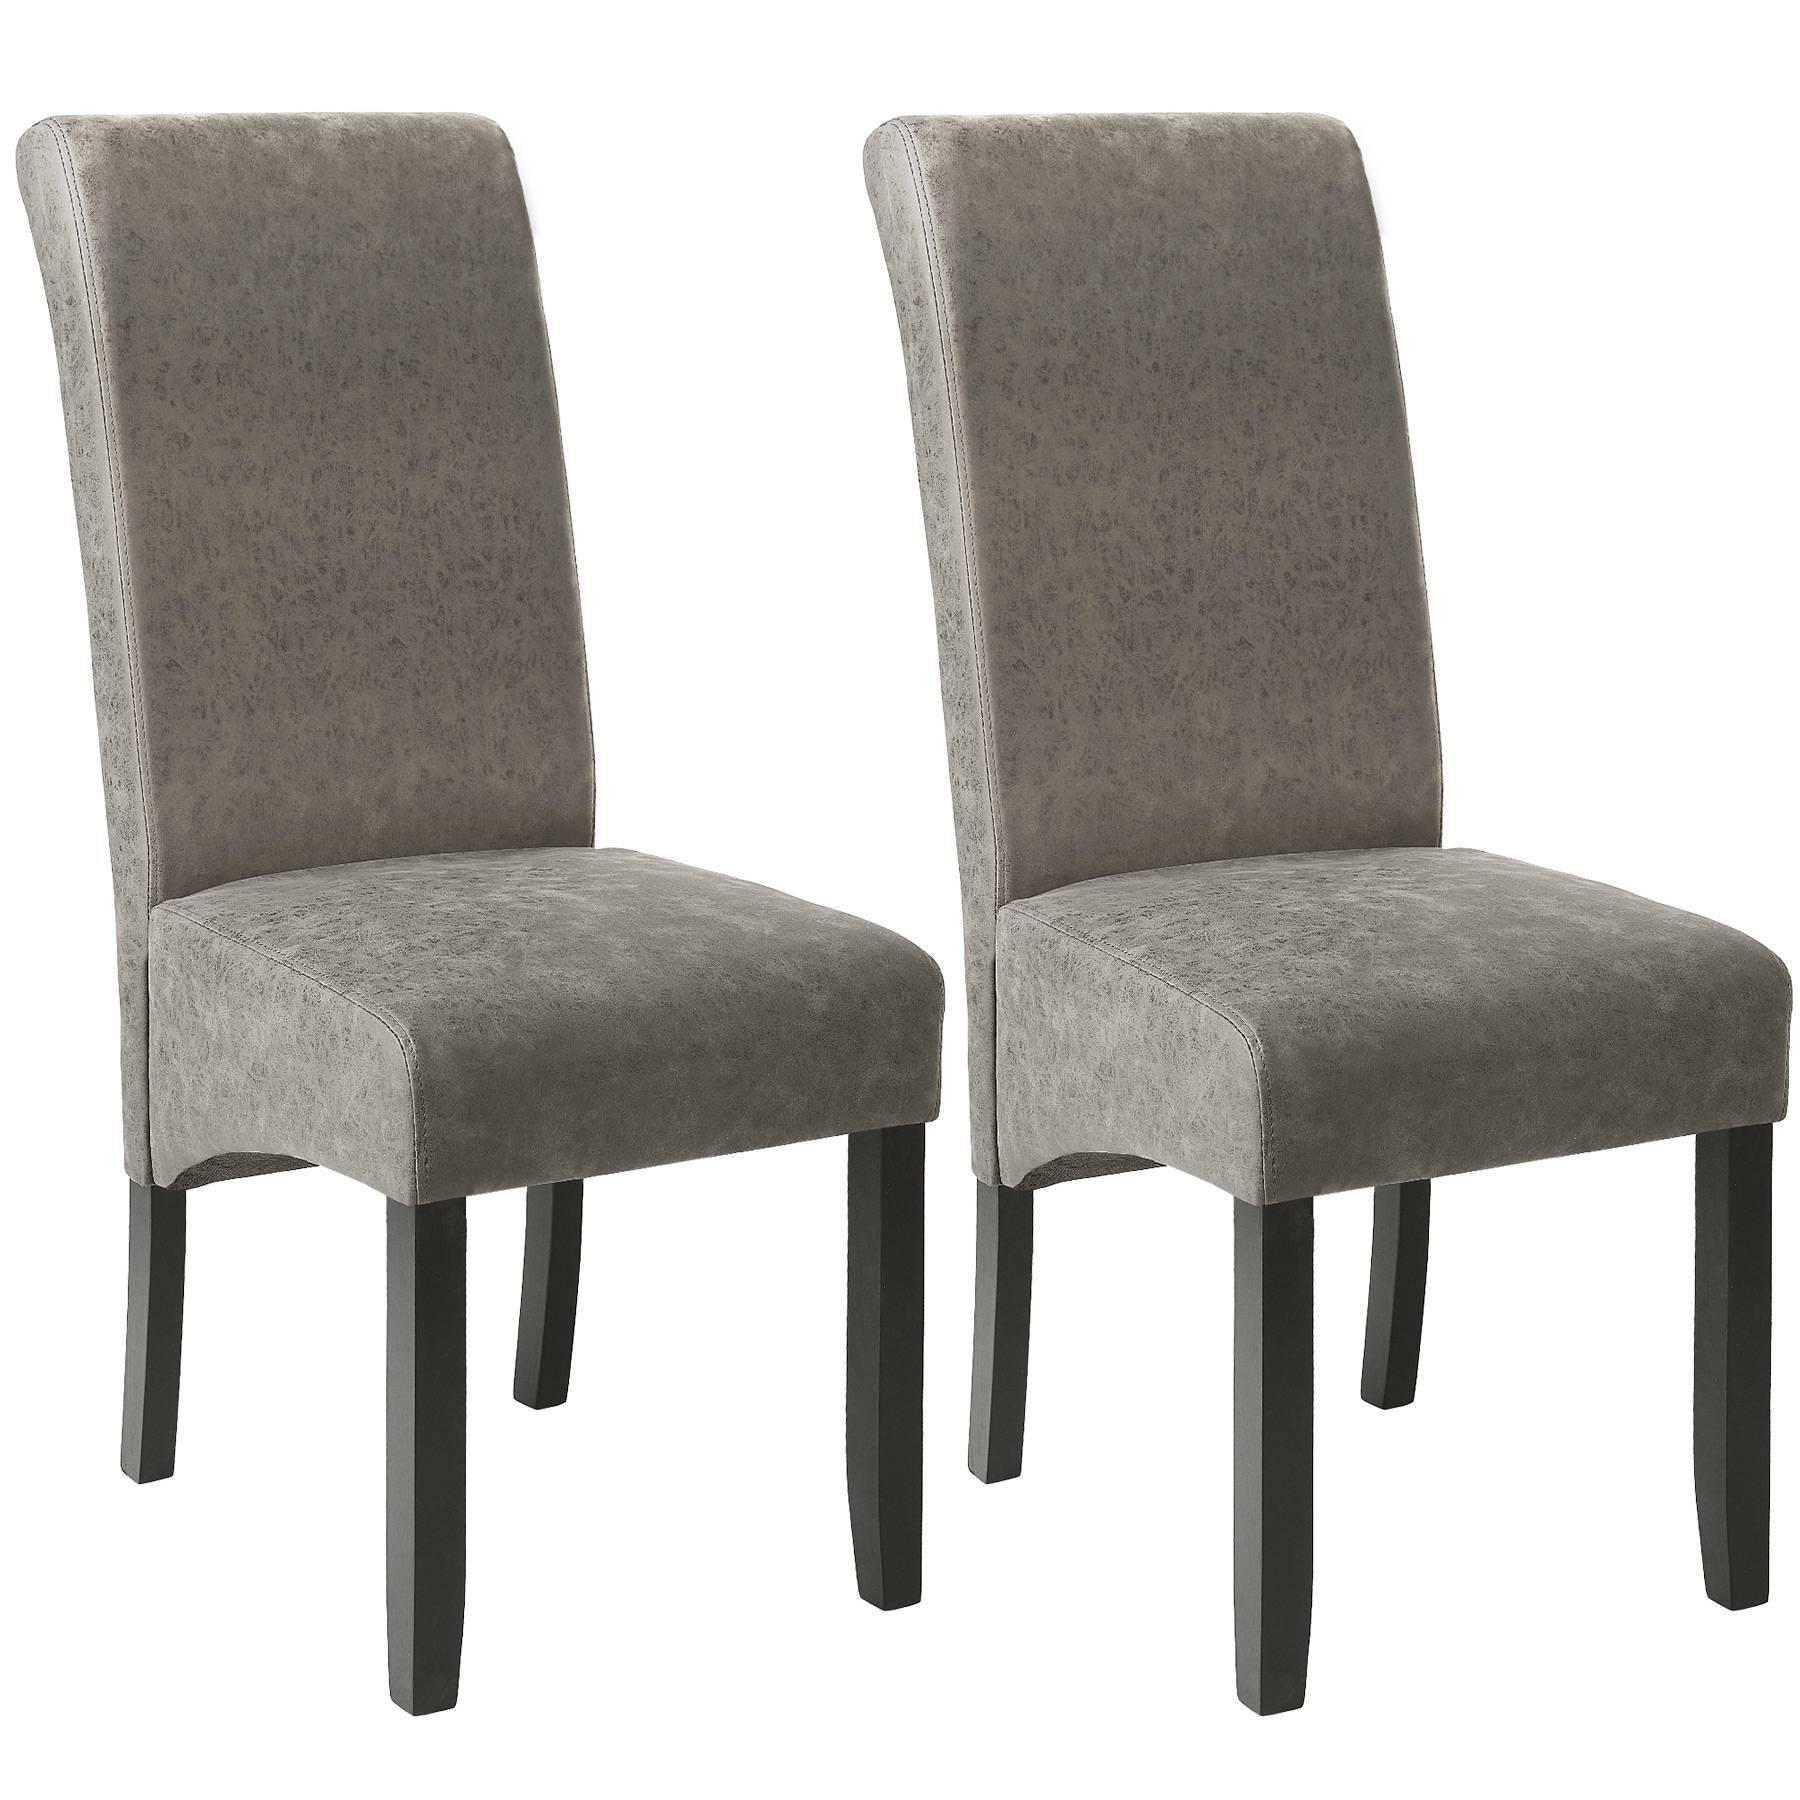 tectake Dining chairs with ergonomic seat shape - gray marbled